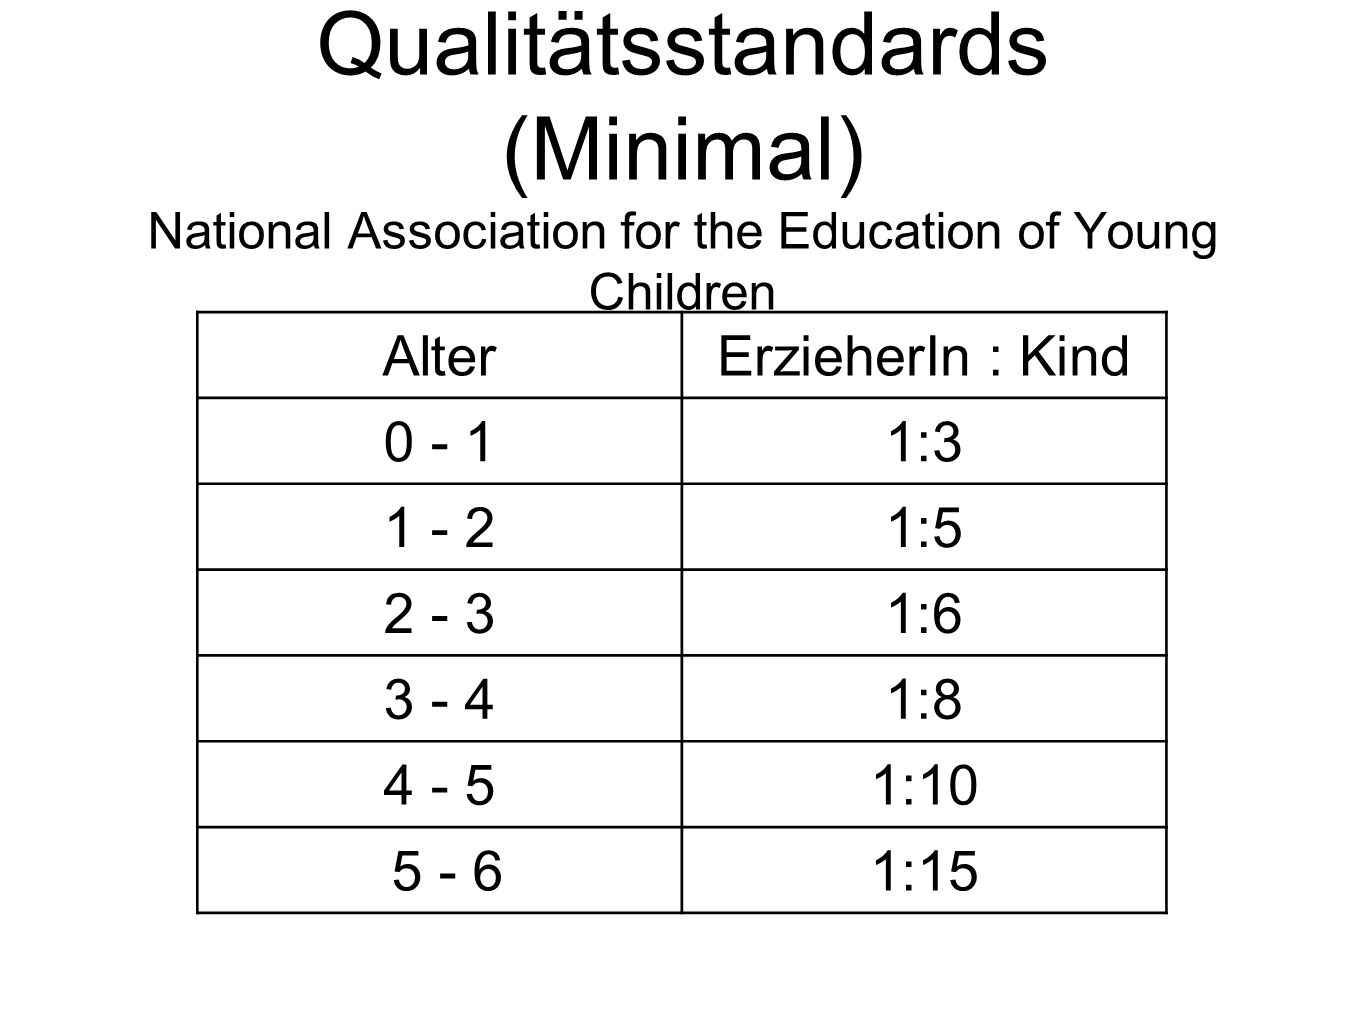 Qualitätsstandards (Minimal) National Association for the Education of Young Children